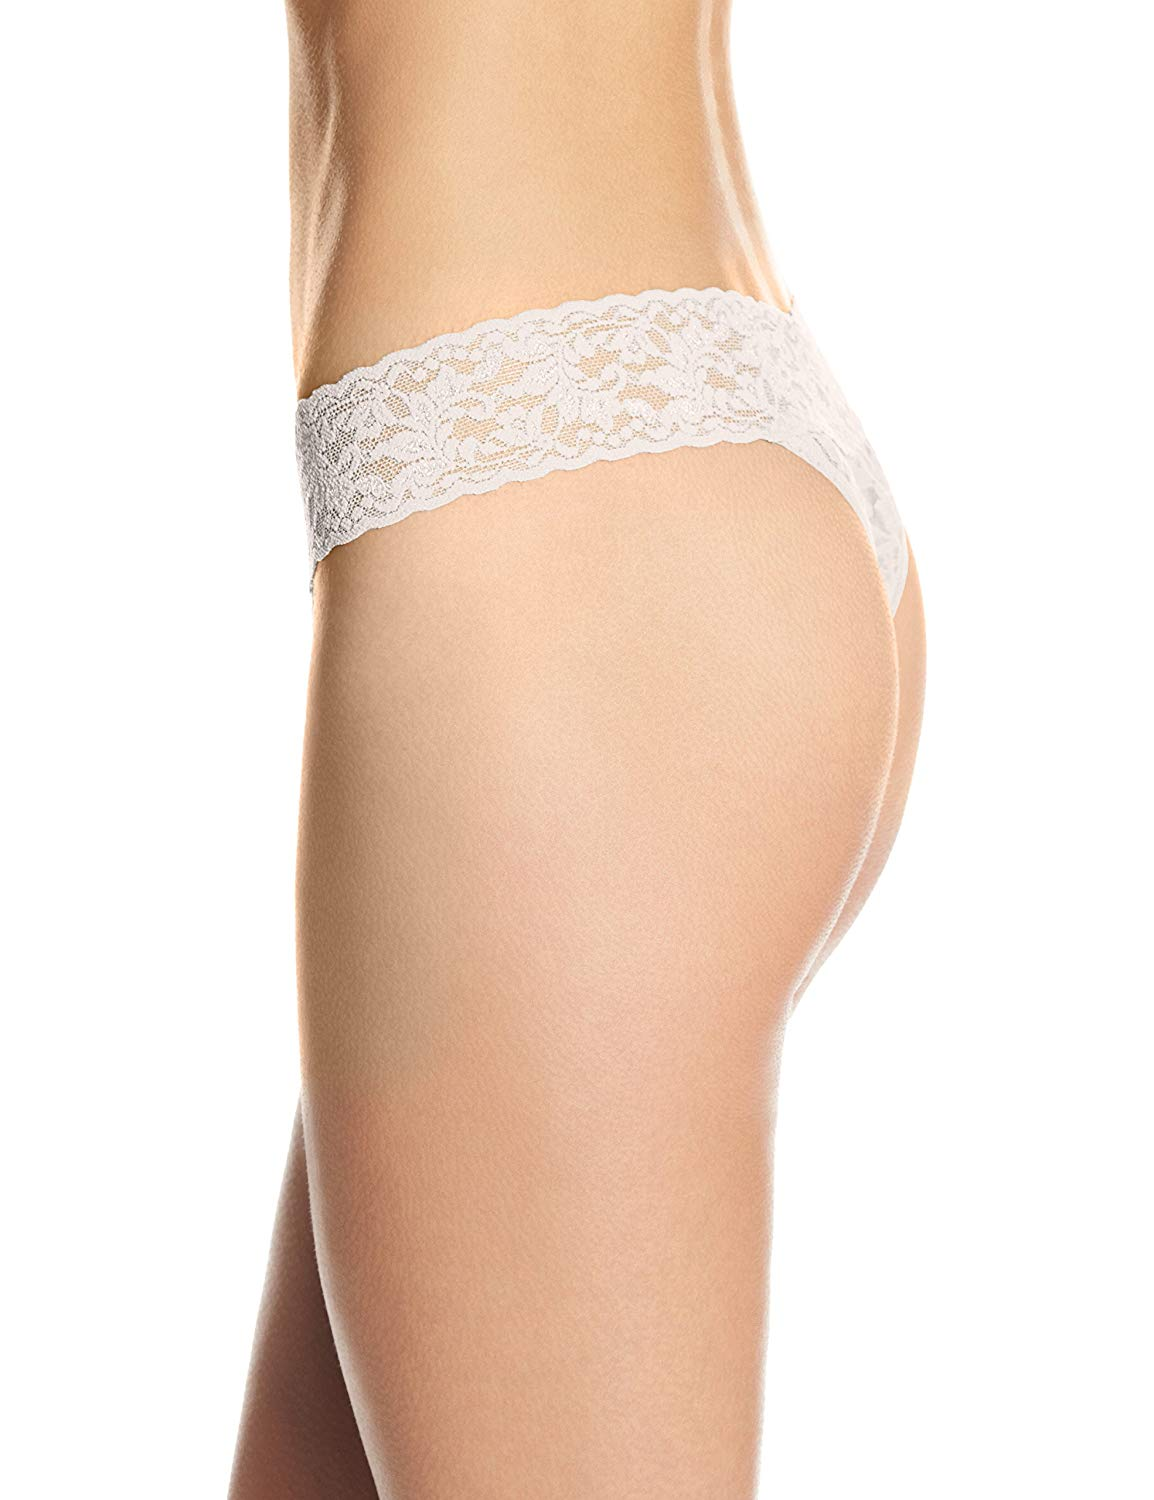 Hanky Panky Signature Lace Original Womens Thong 4811P-IVOR